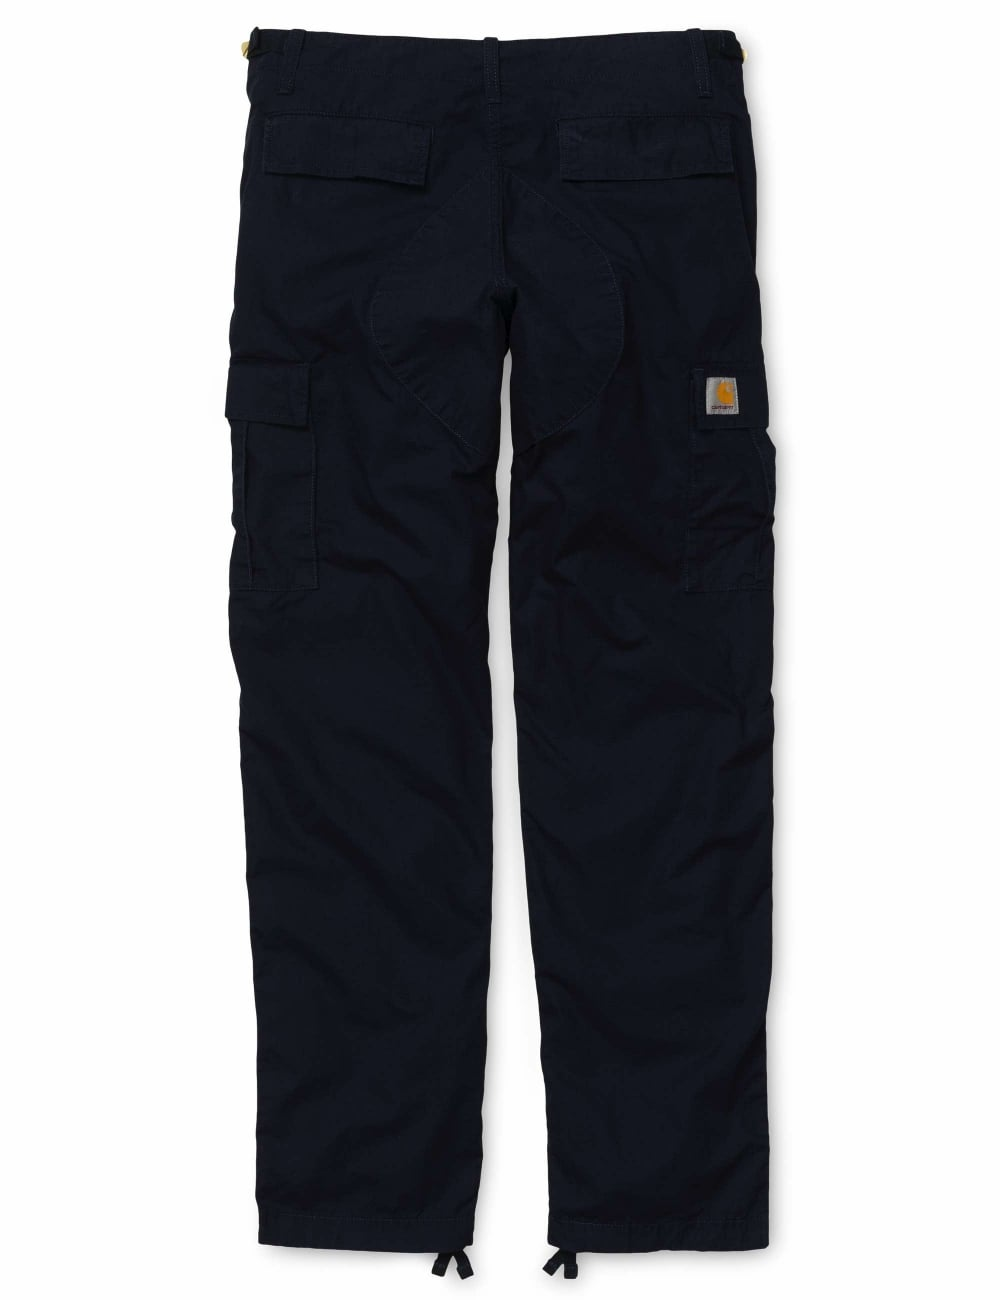 b54e9134db Carhartt WIP Aviation Cargo Pant - Dark Navy - Trousers from Fat ...